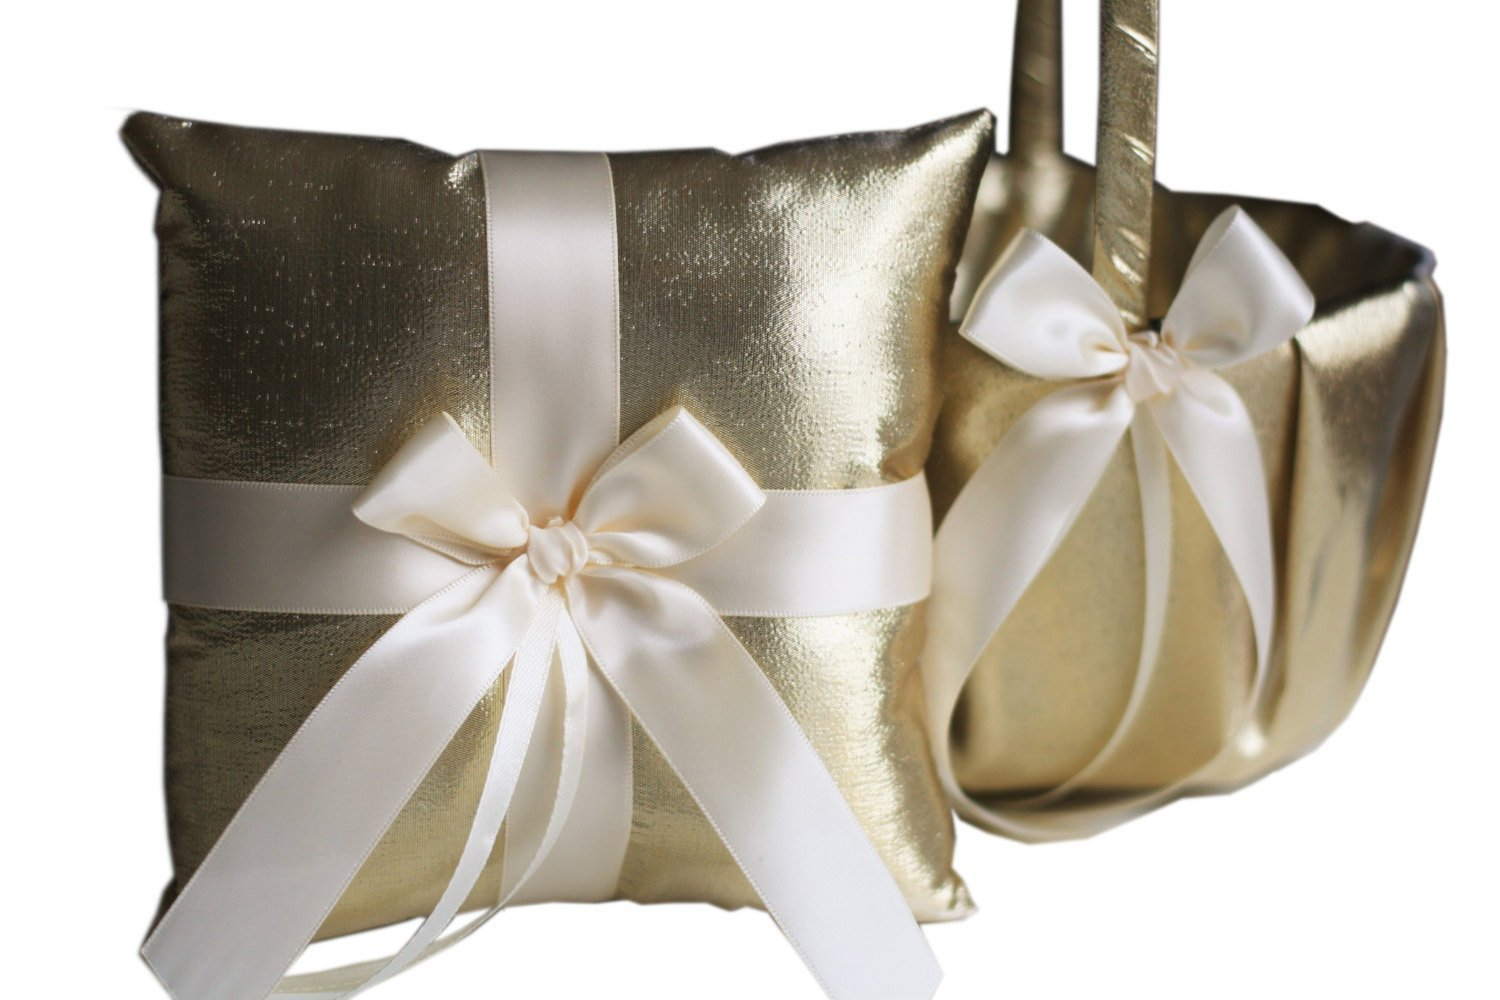 2 BASKETS & 1 PILLOW of Alex Emotions | Gold Collection | Gold Ivory Wedding Ring Pillow & Flower Girl Basket Set by Alex Emotions